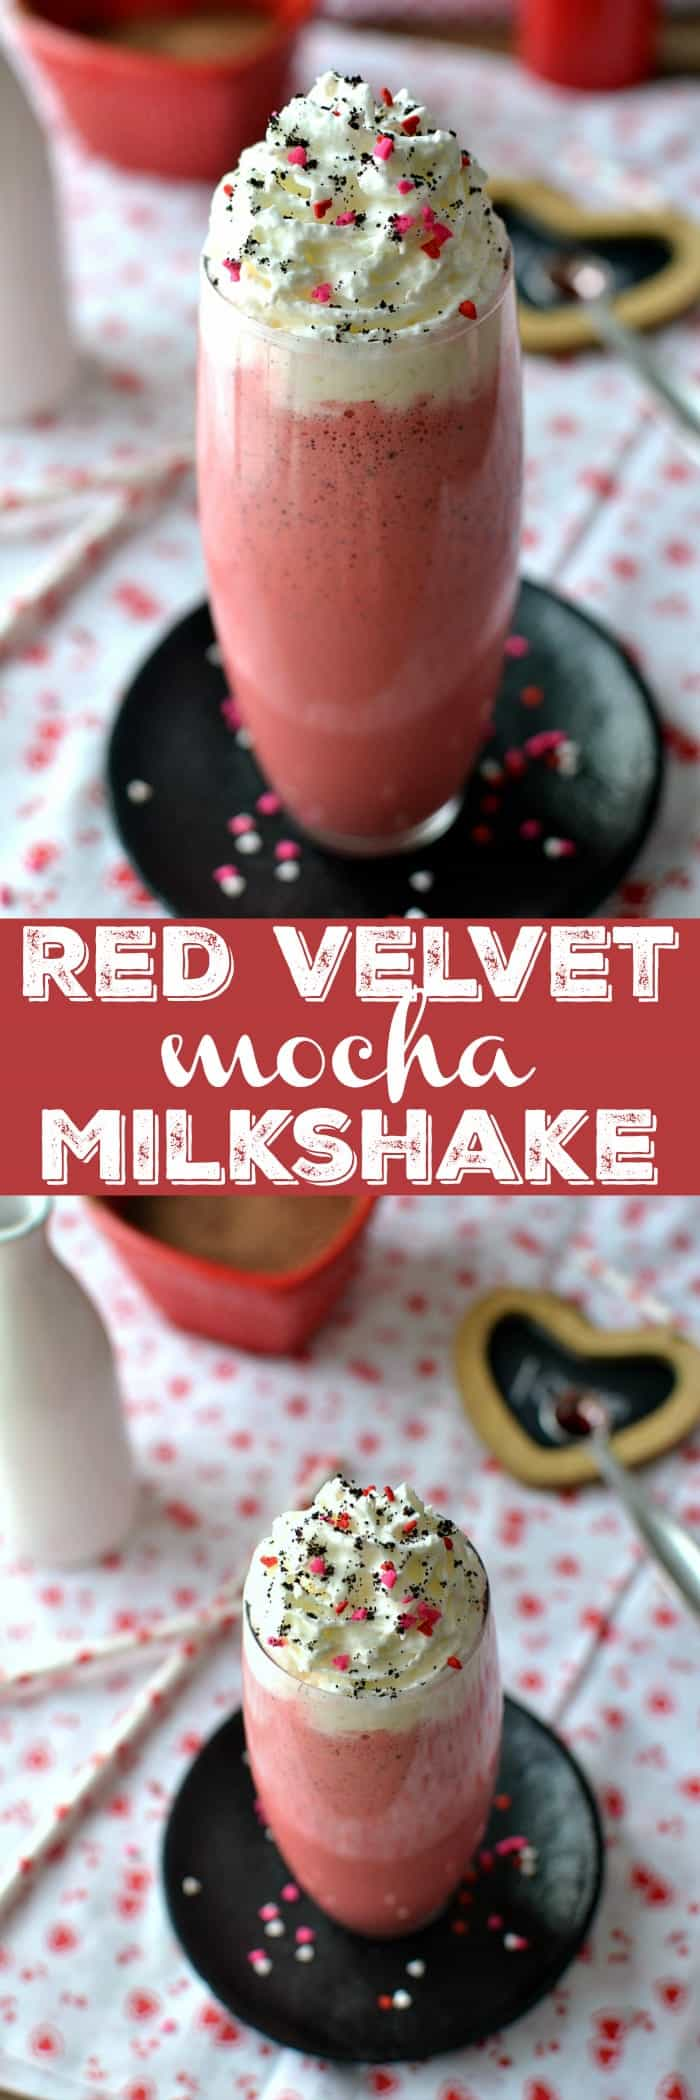 Red Velvet Mocha Milkshake is not your average shake! This dessert milkshake is complete with a touch of cream cheese for that perfect red velvet flavor.